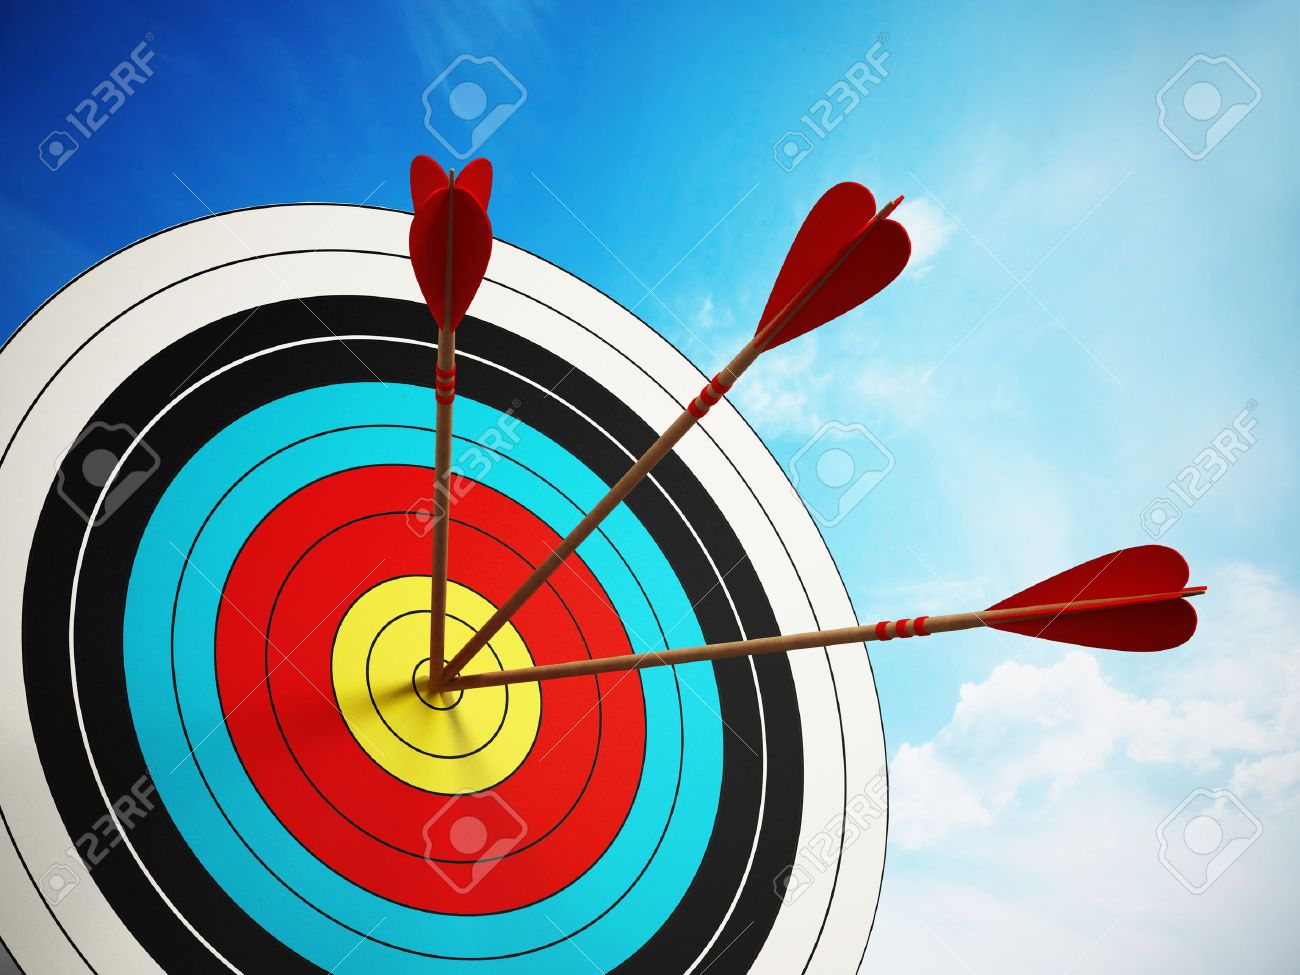 Three arrows at the center of the target. Stock Photo - 45054162